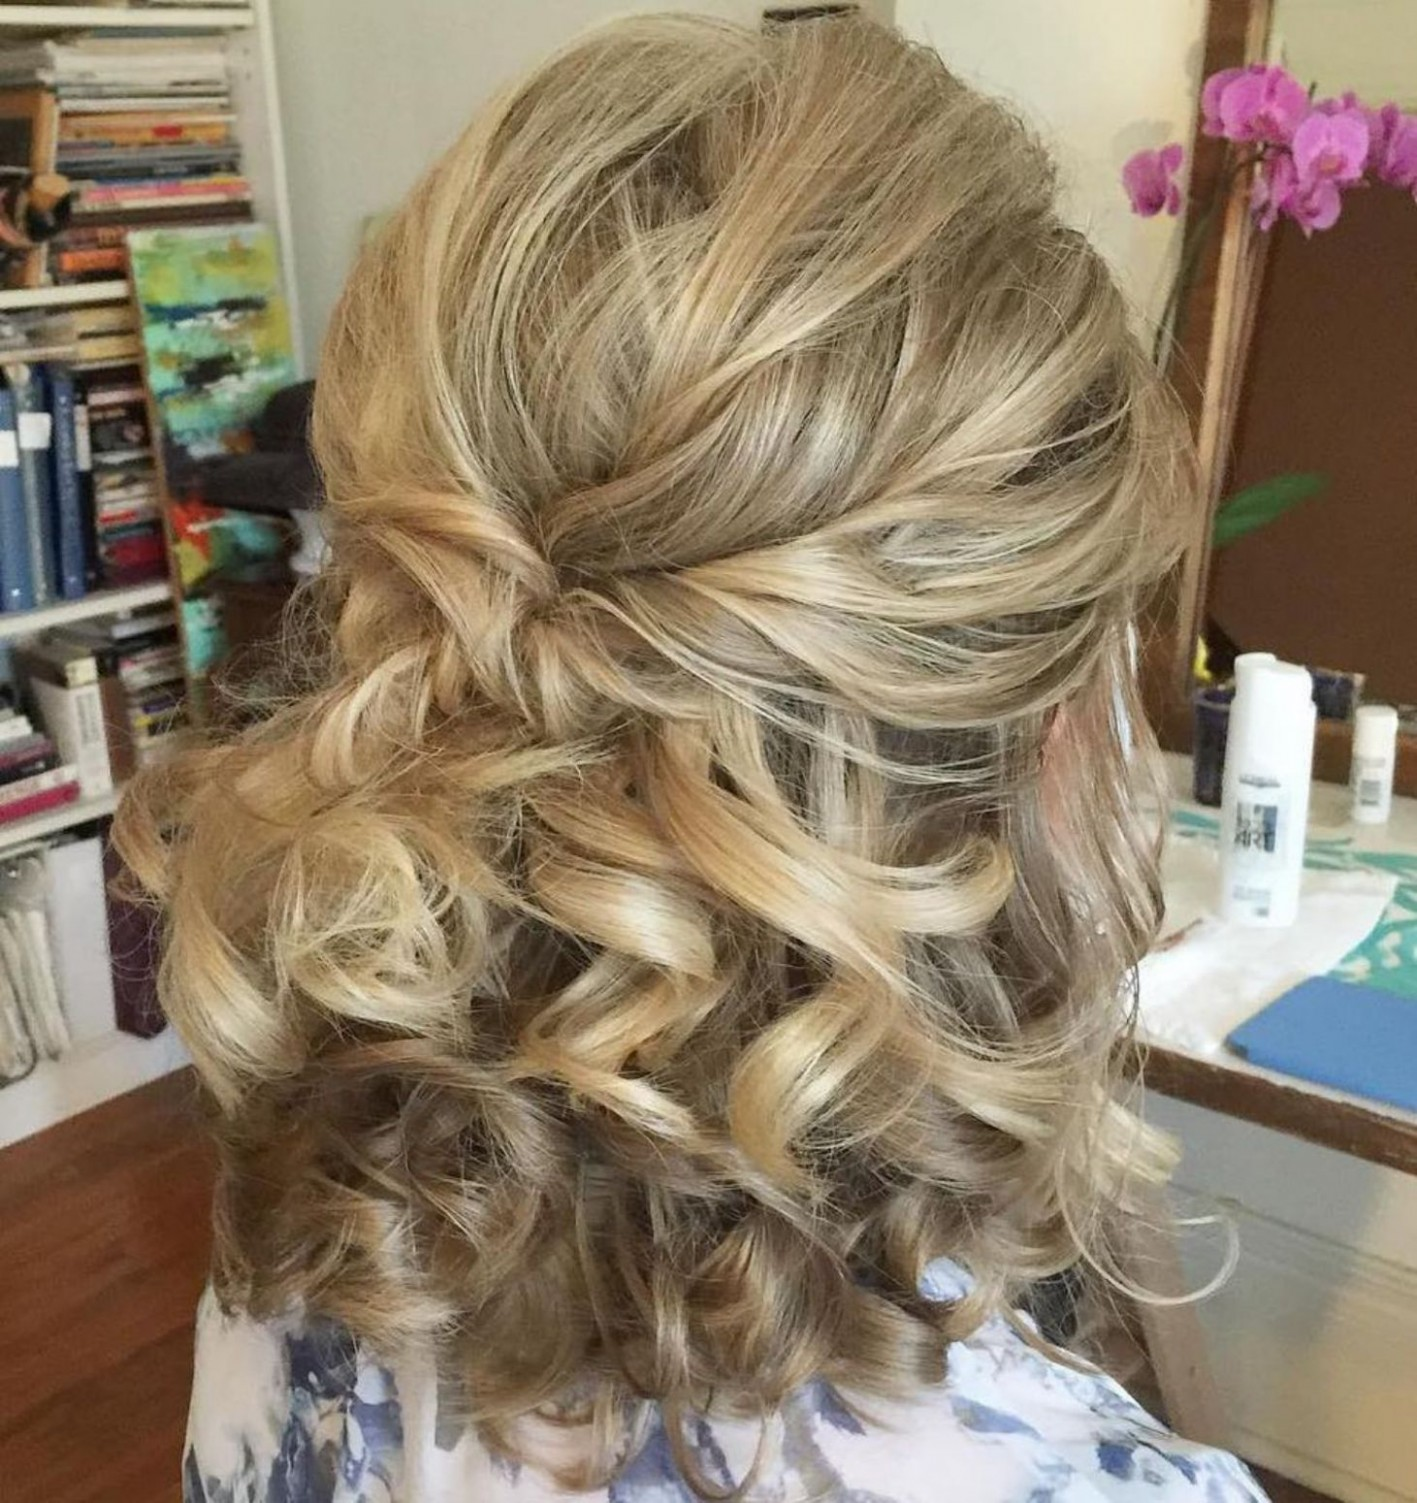 10 Half Updos For Your Perfect Everyday And Party Looks Hair Half Updos For Medium Length Hair